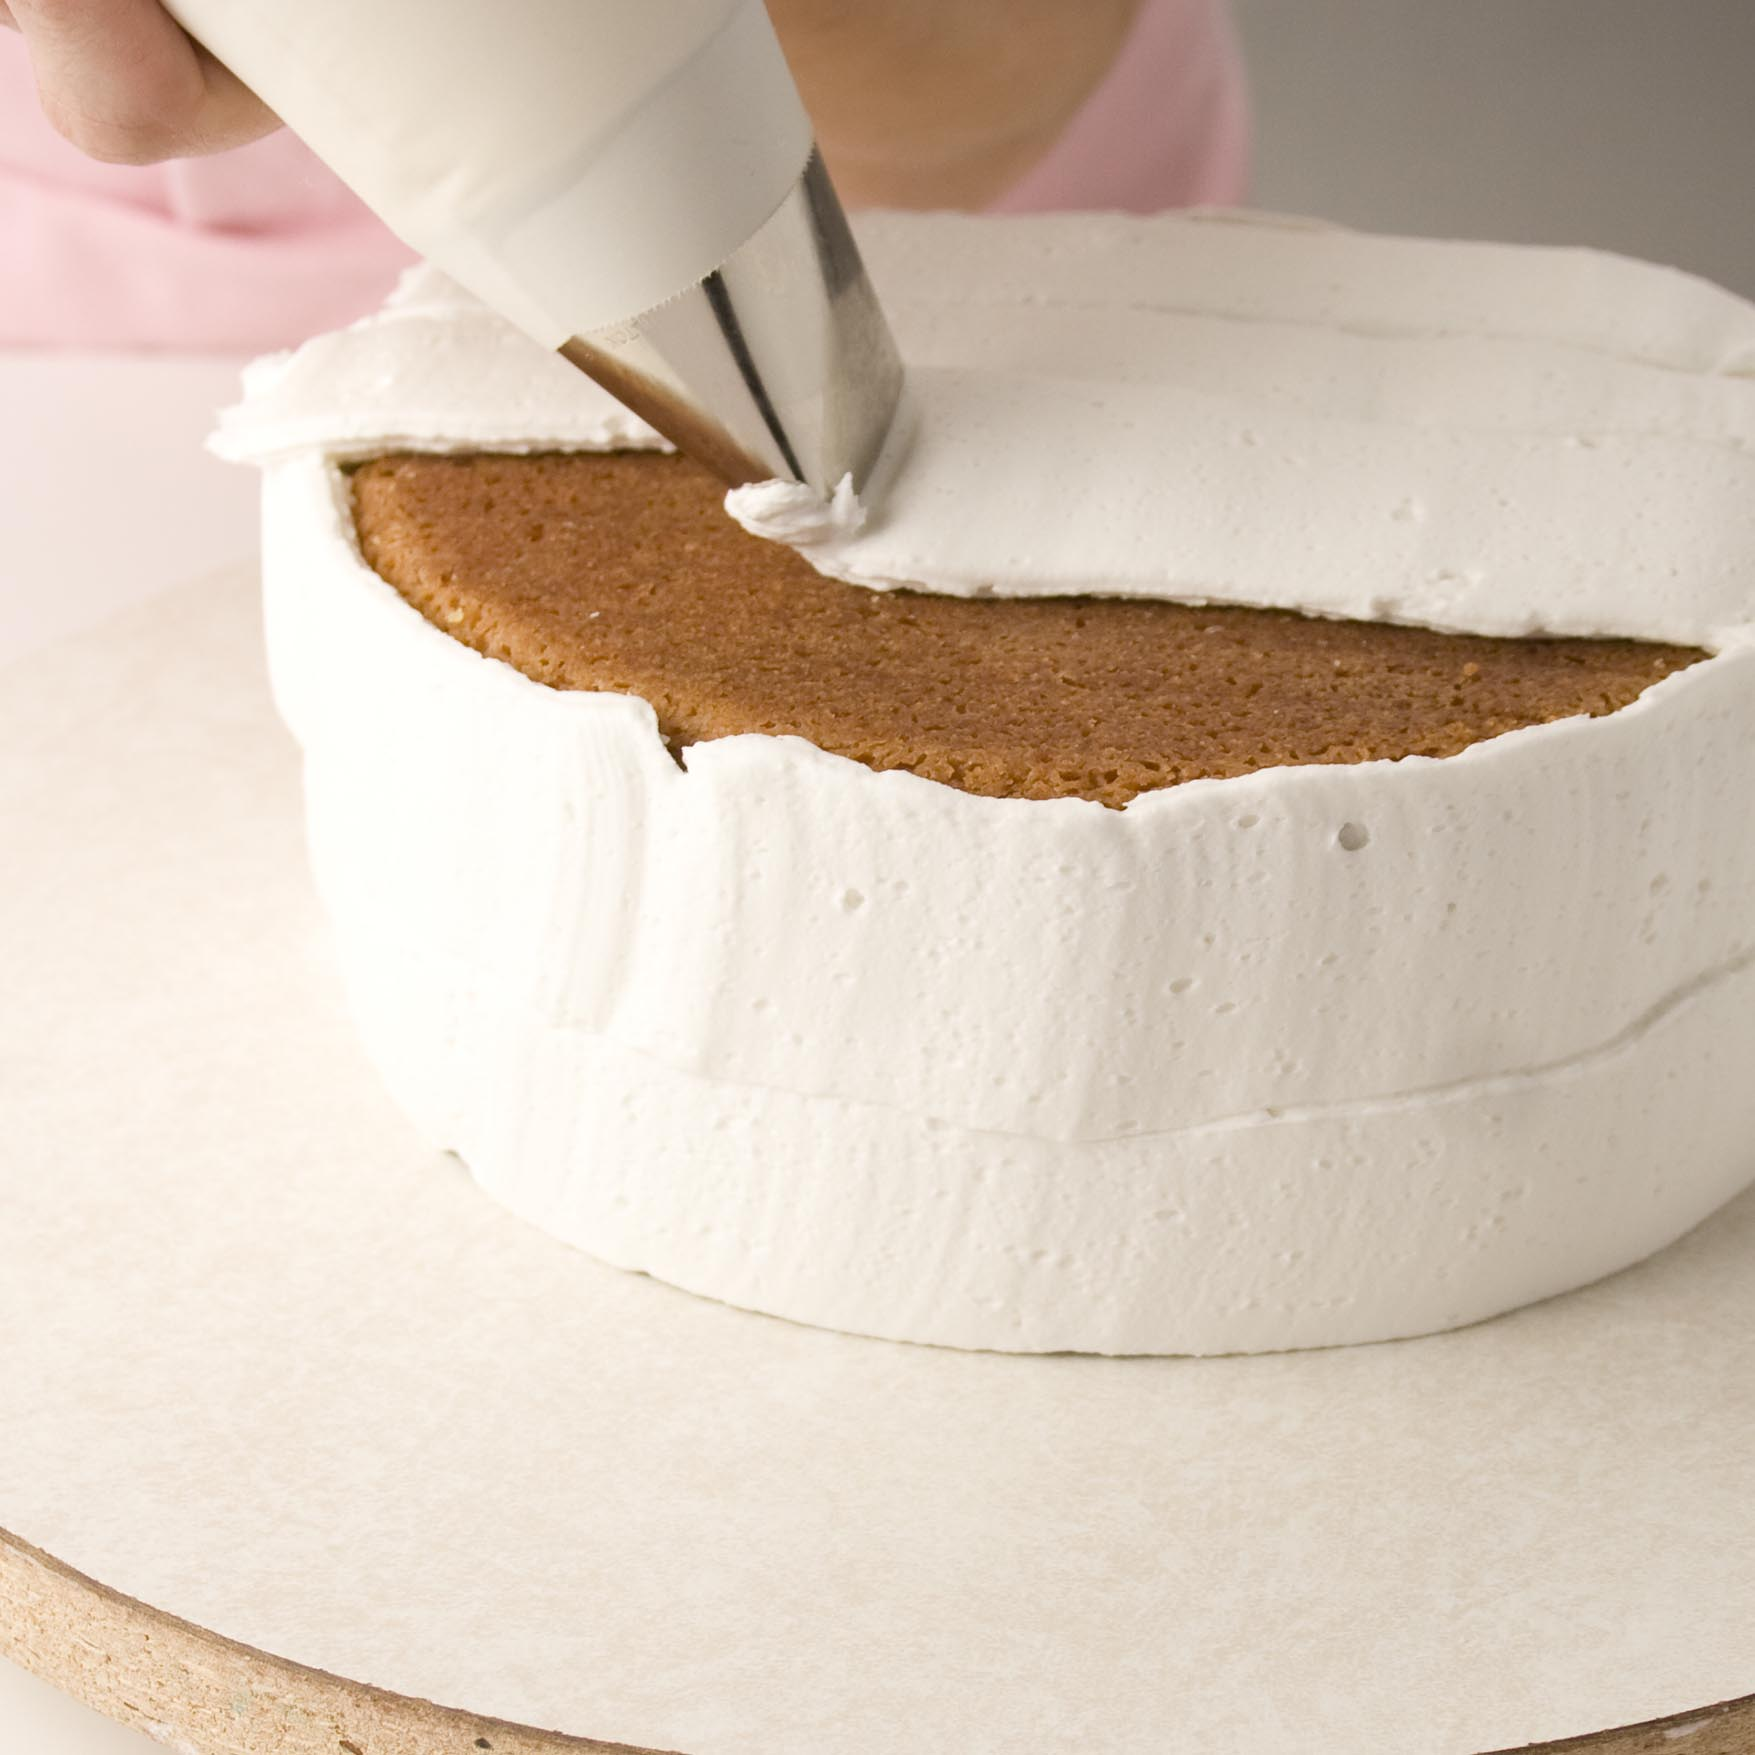 Icing a Cake- Quick Icer Method